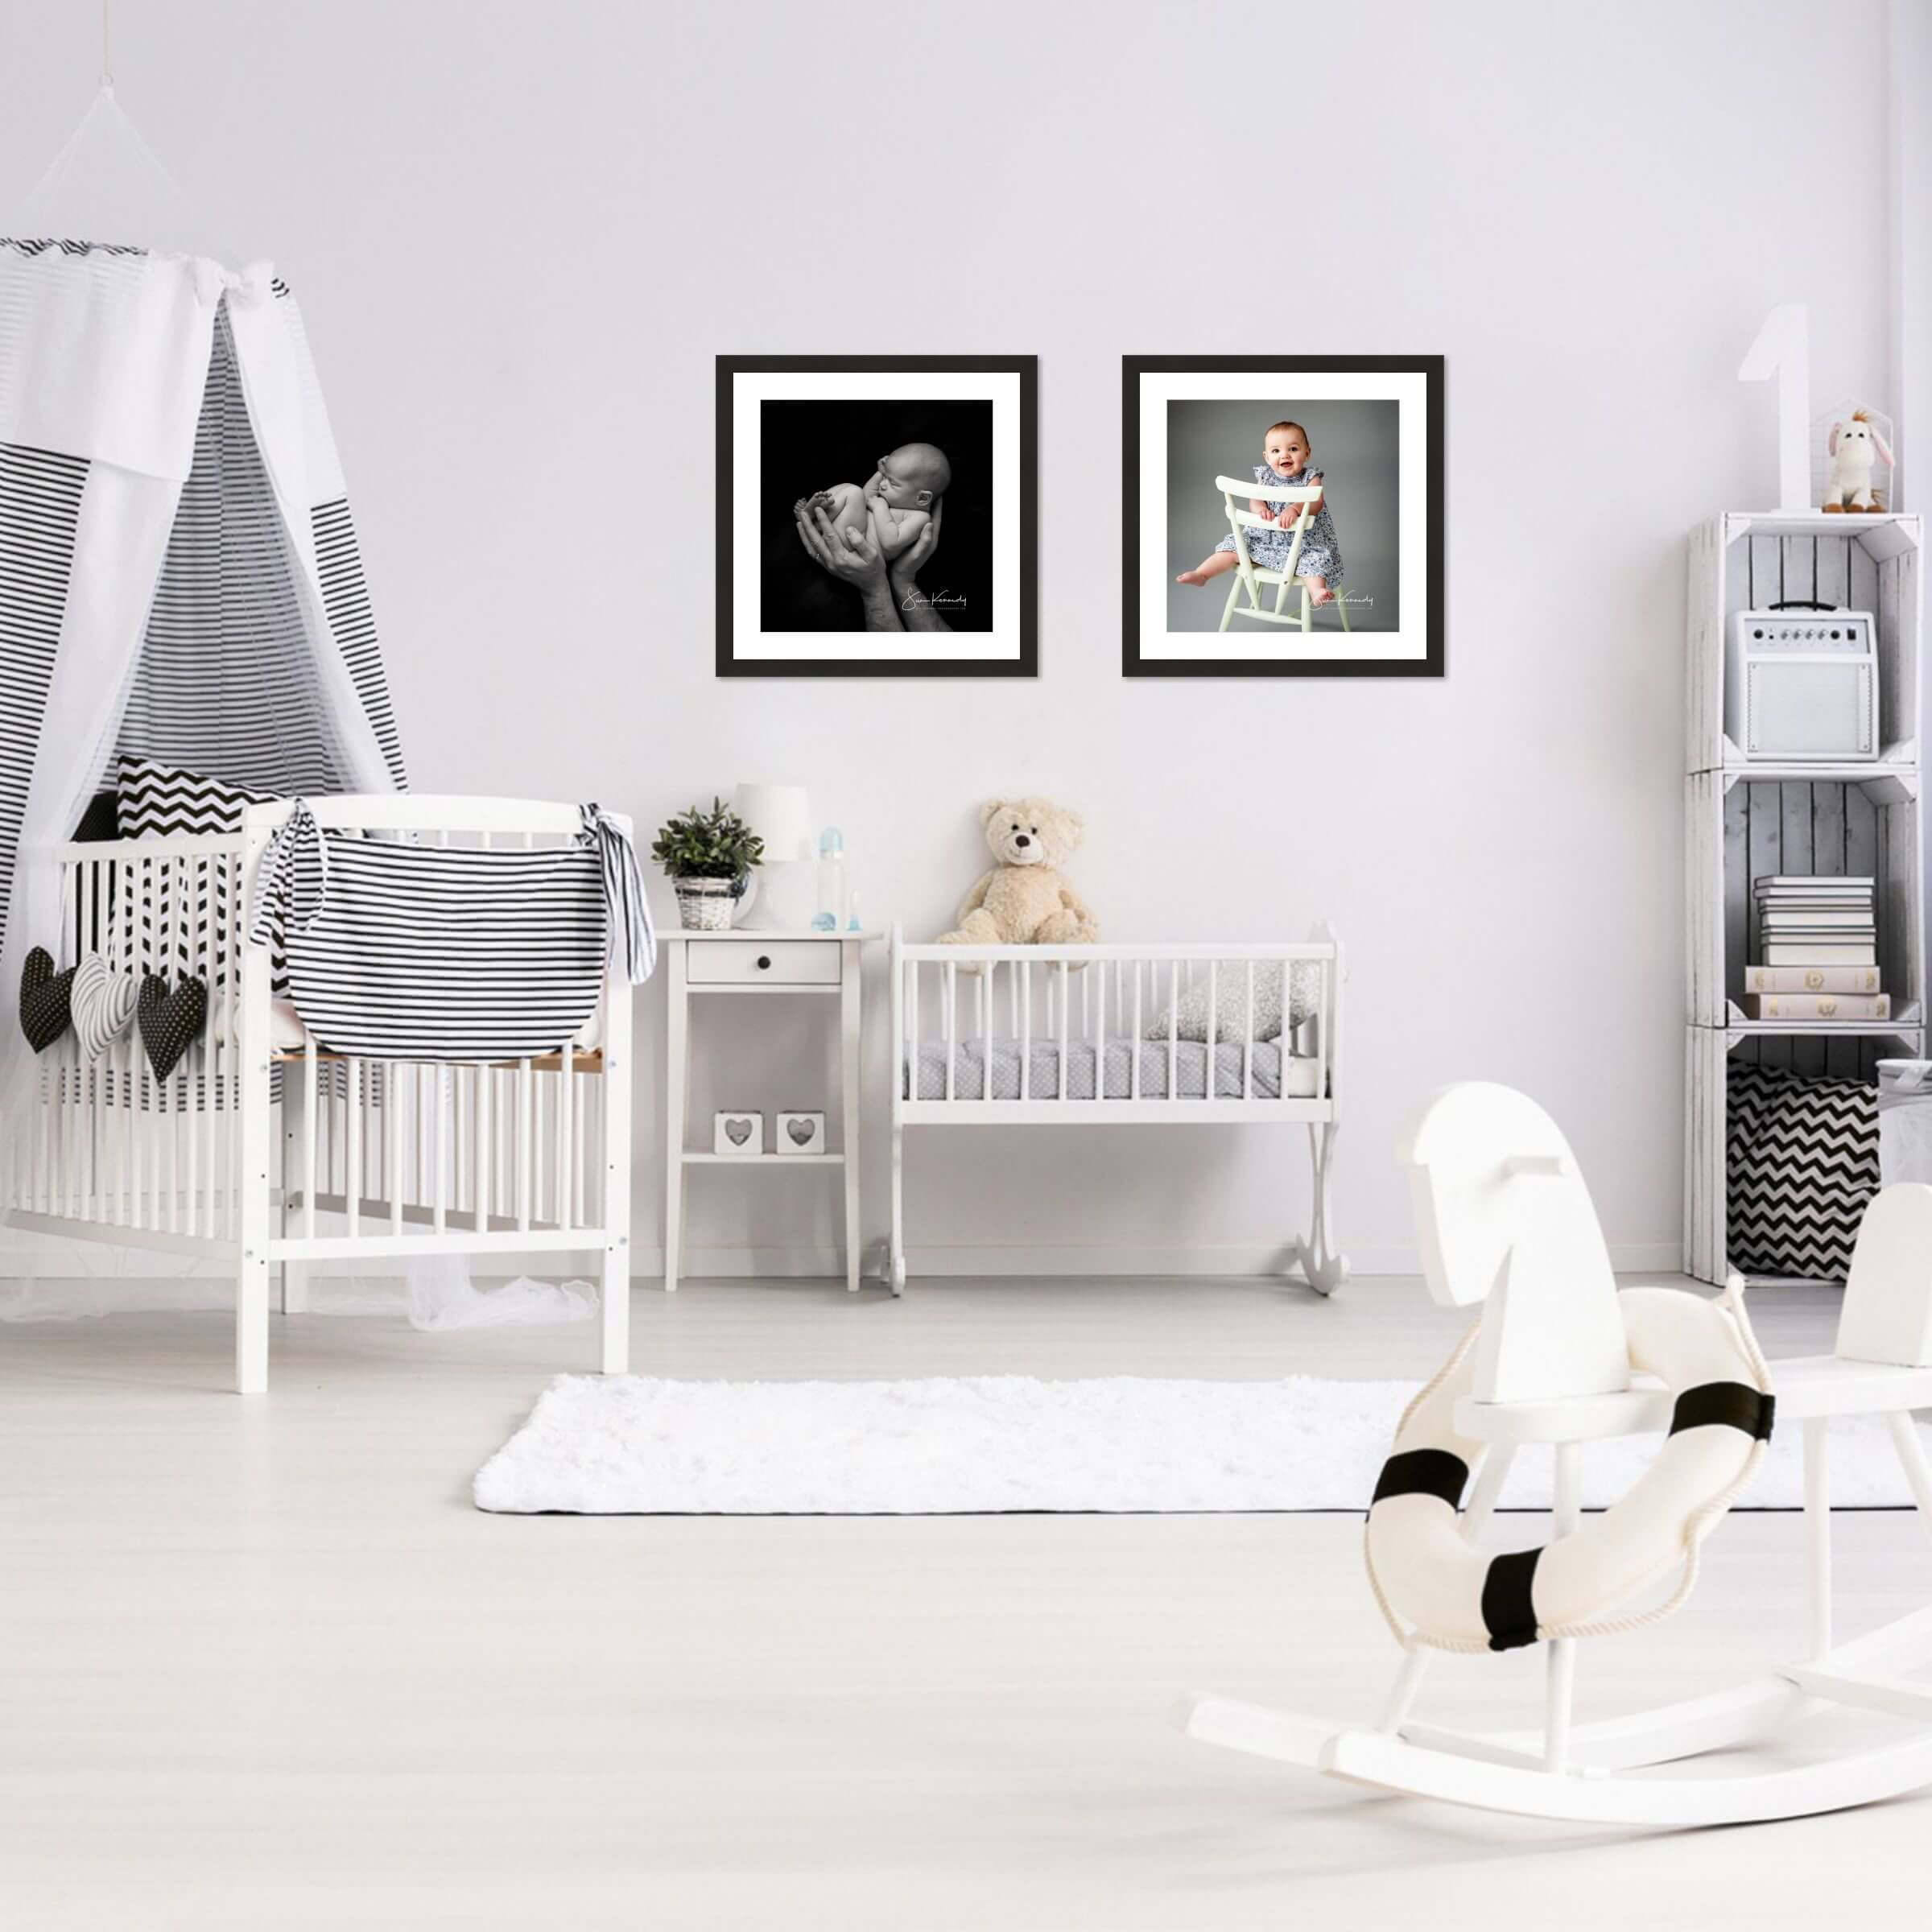 Nursery room scene with wall art